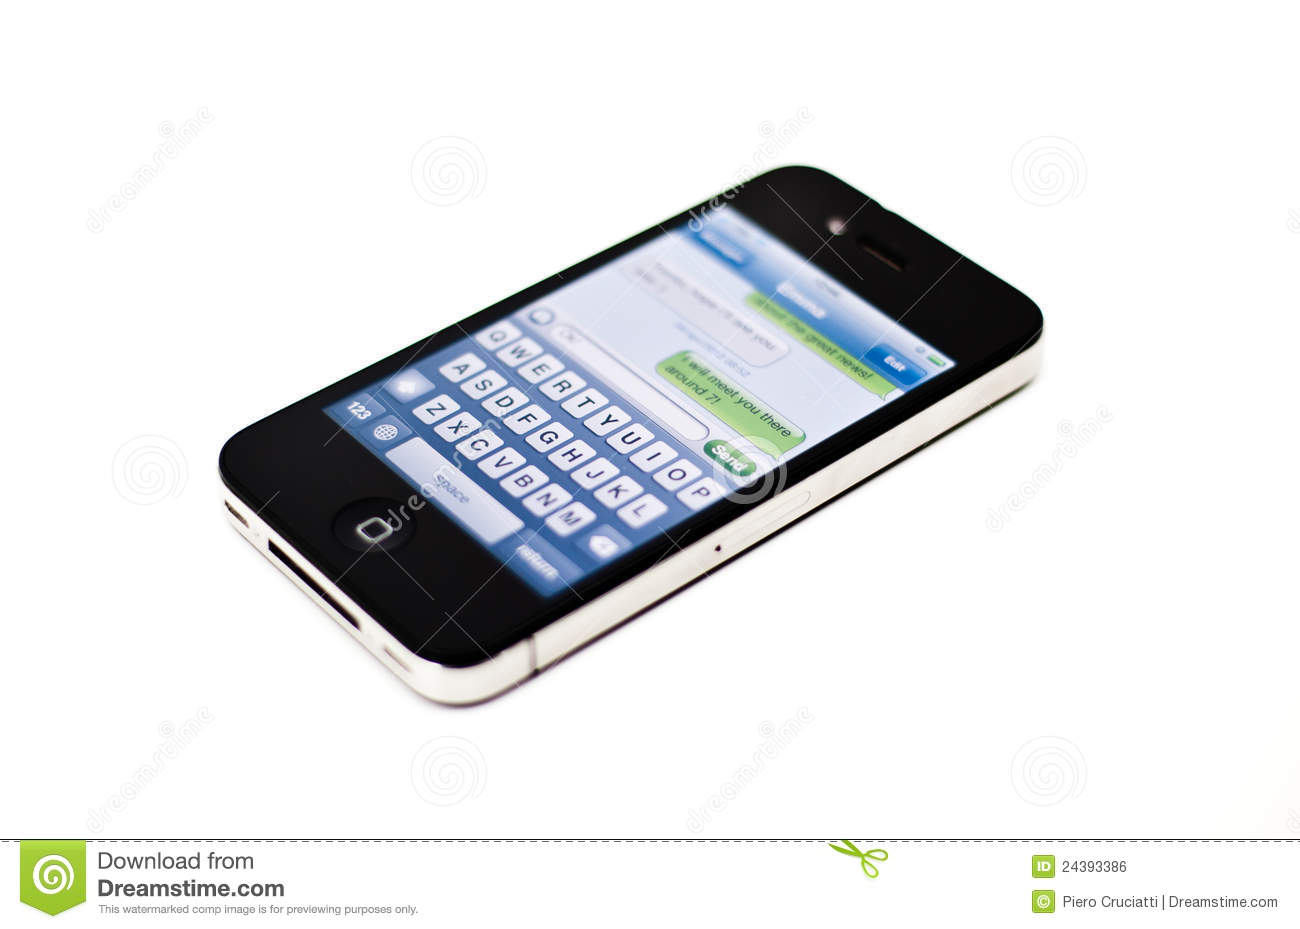 Iphone message clipart library Text Message Clipart - Clipart Kid library